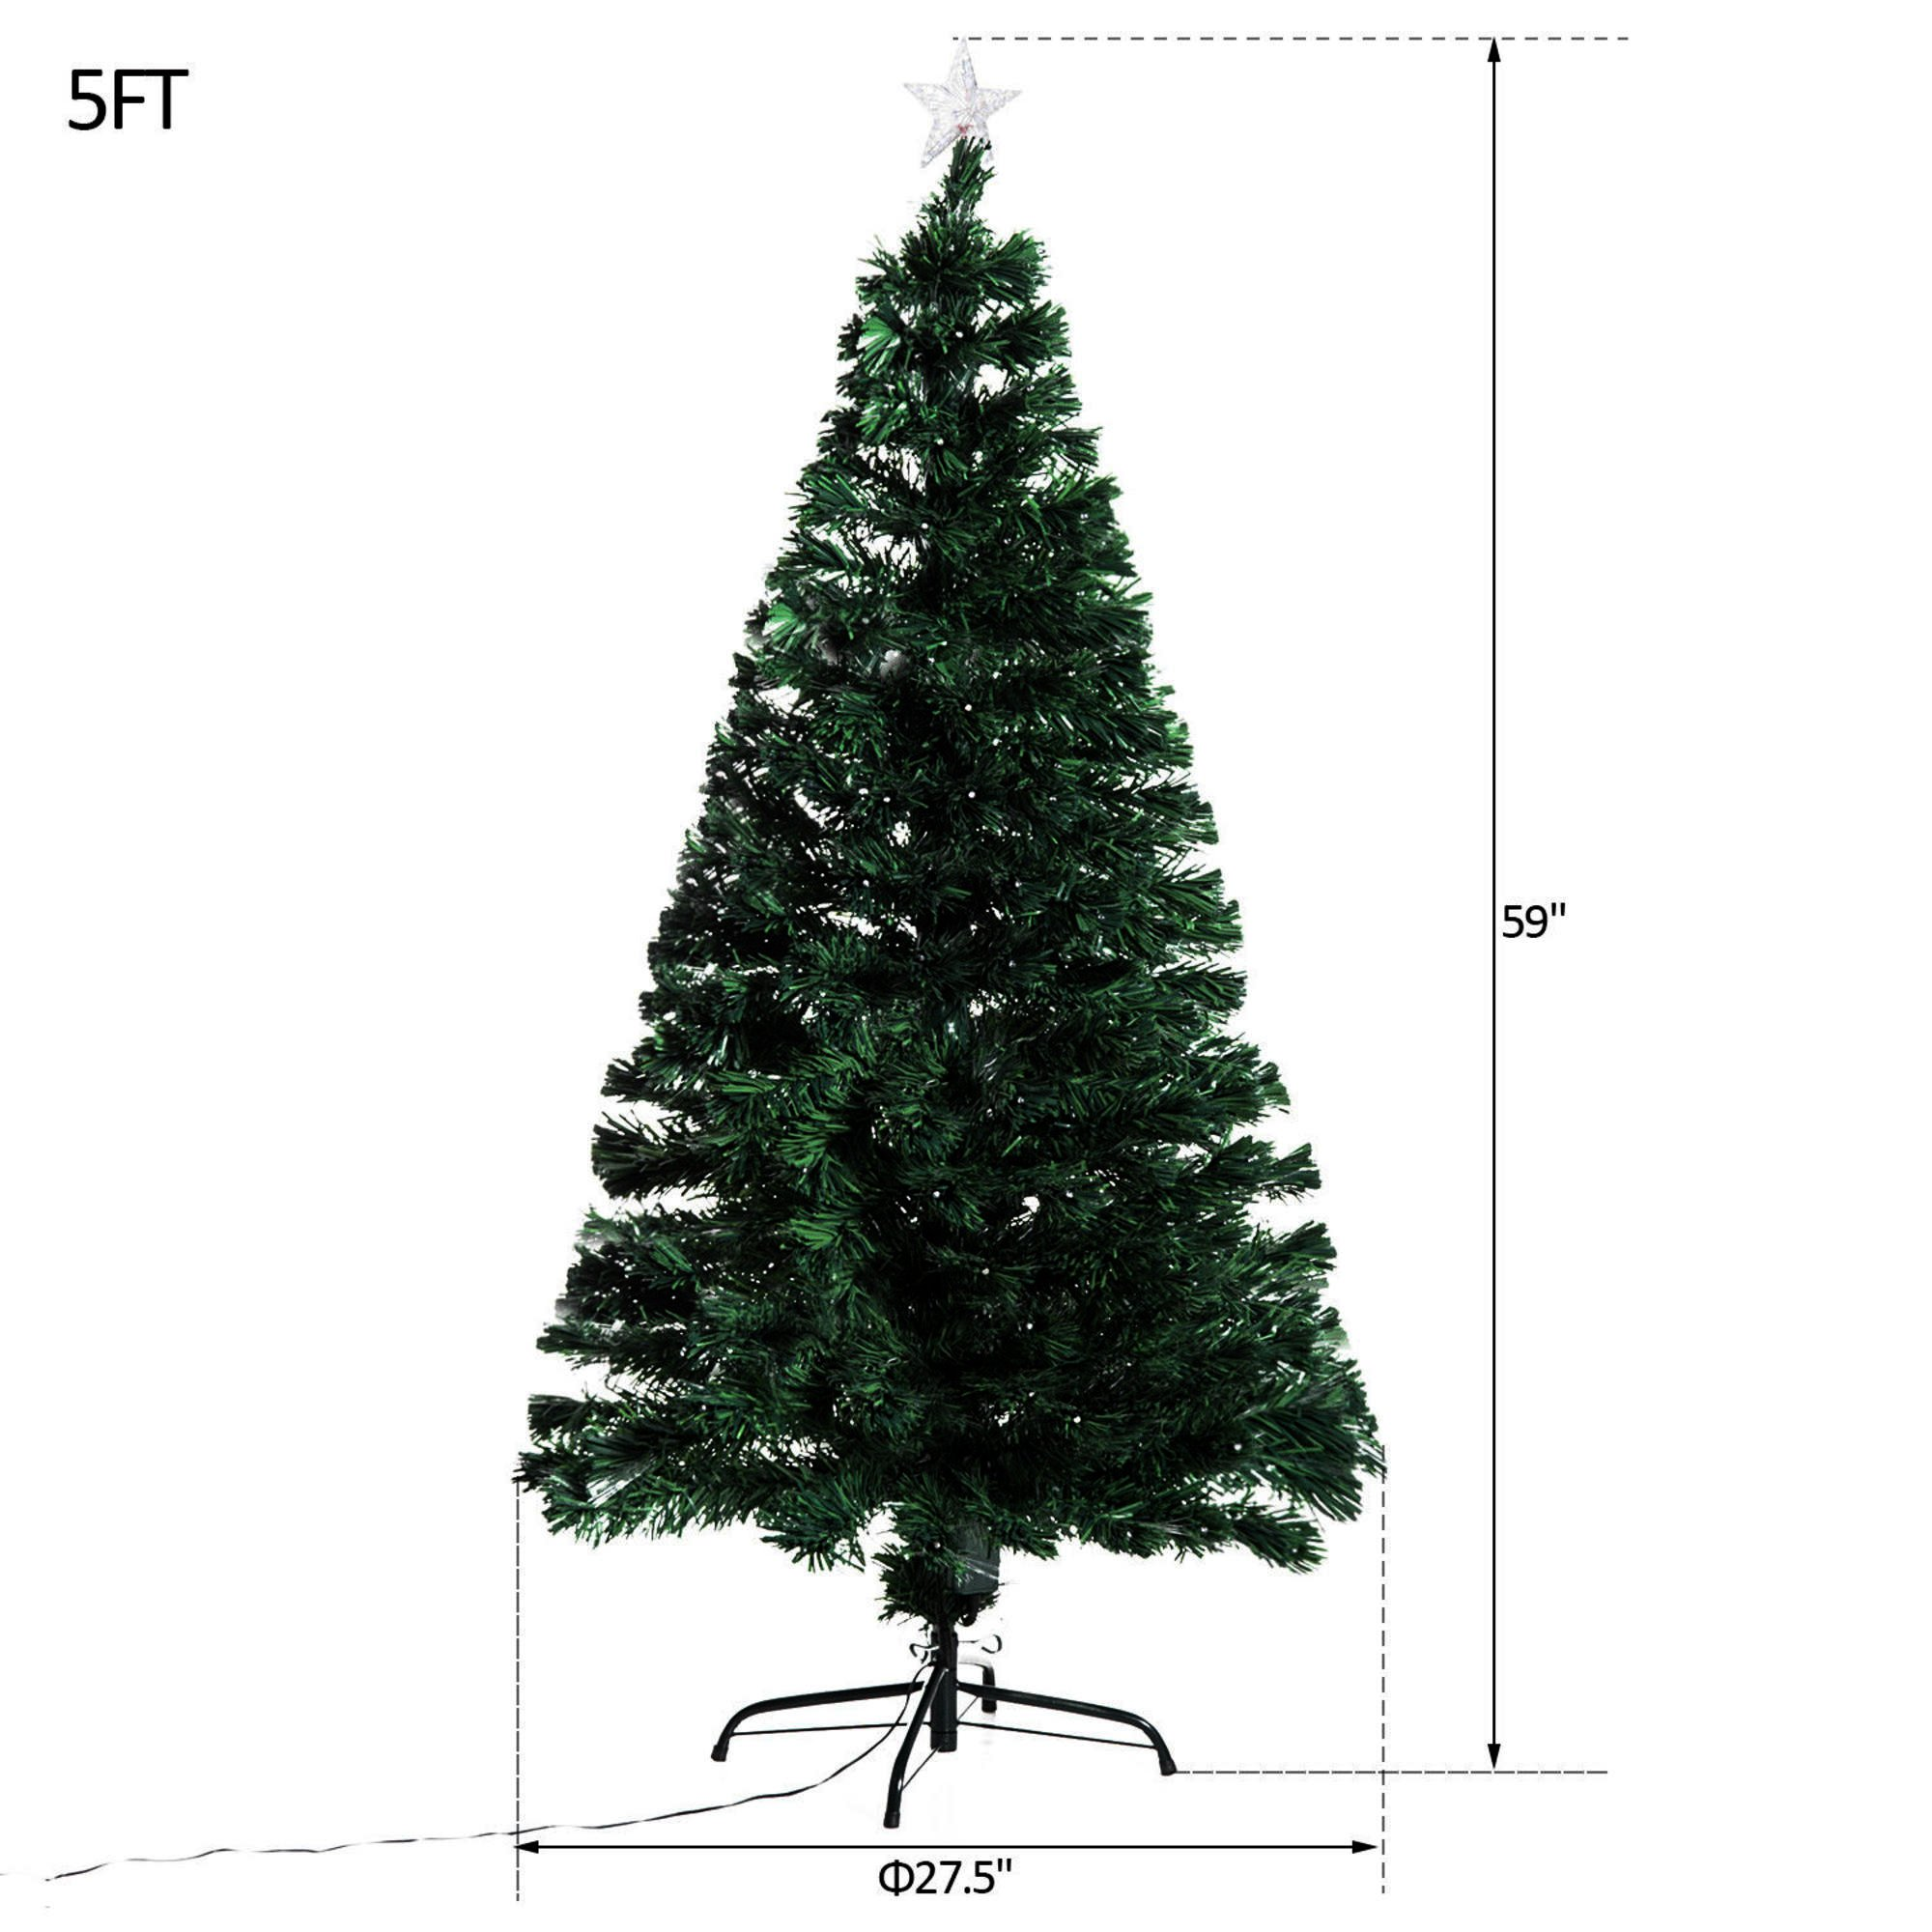 Artificial Christmas Tree. This Fake 5 Foot Xmas Fiber Optic Pine Densely, Lush, Easy-to-shape Green Branches Looks Natural. Great For Indoor, Holiday Season Party Decor & Festive Mood. by Artificial-Christmas-Tree